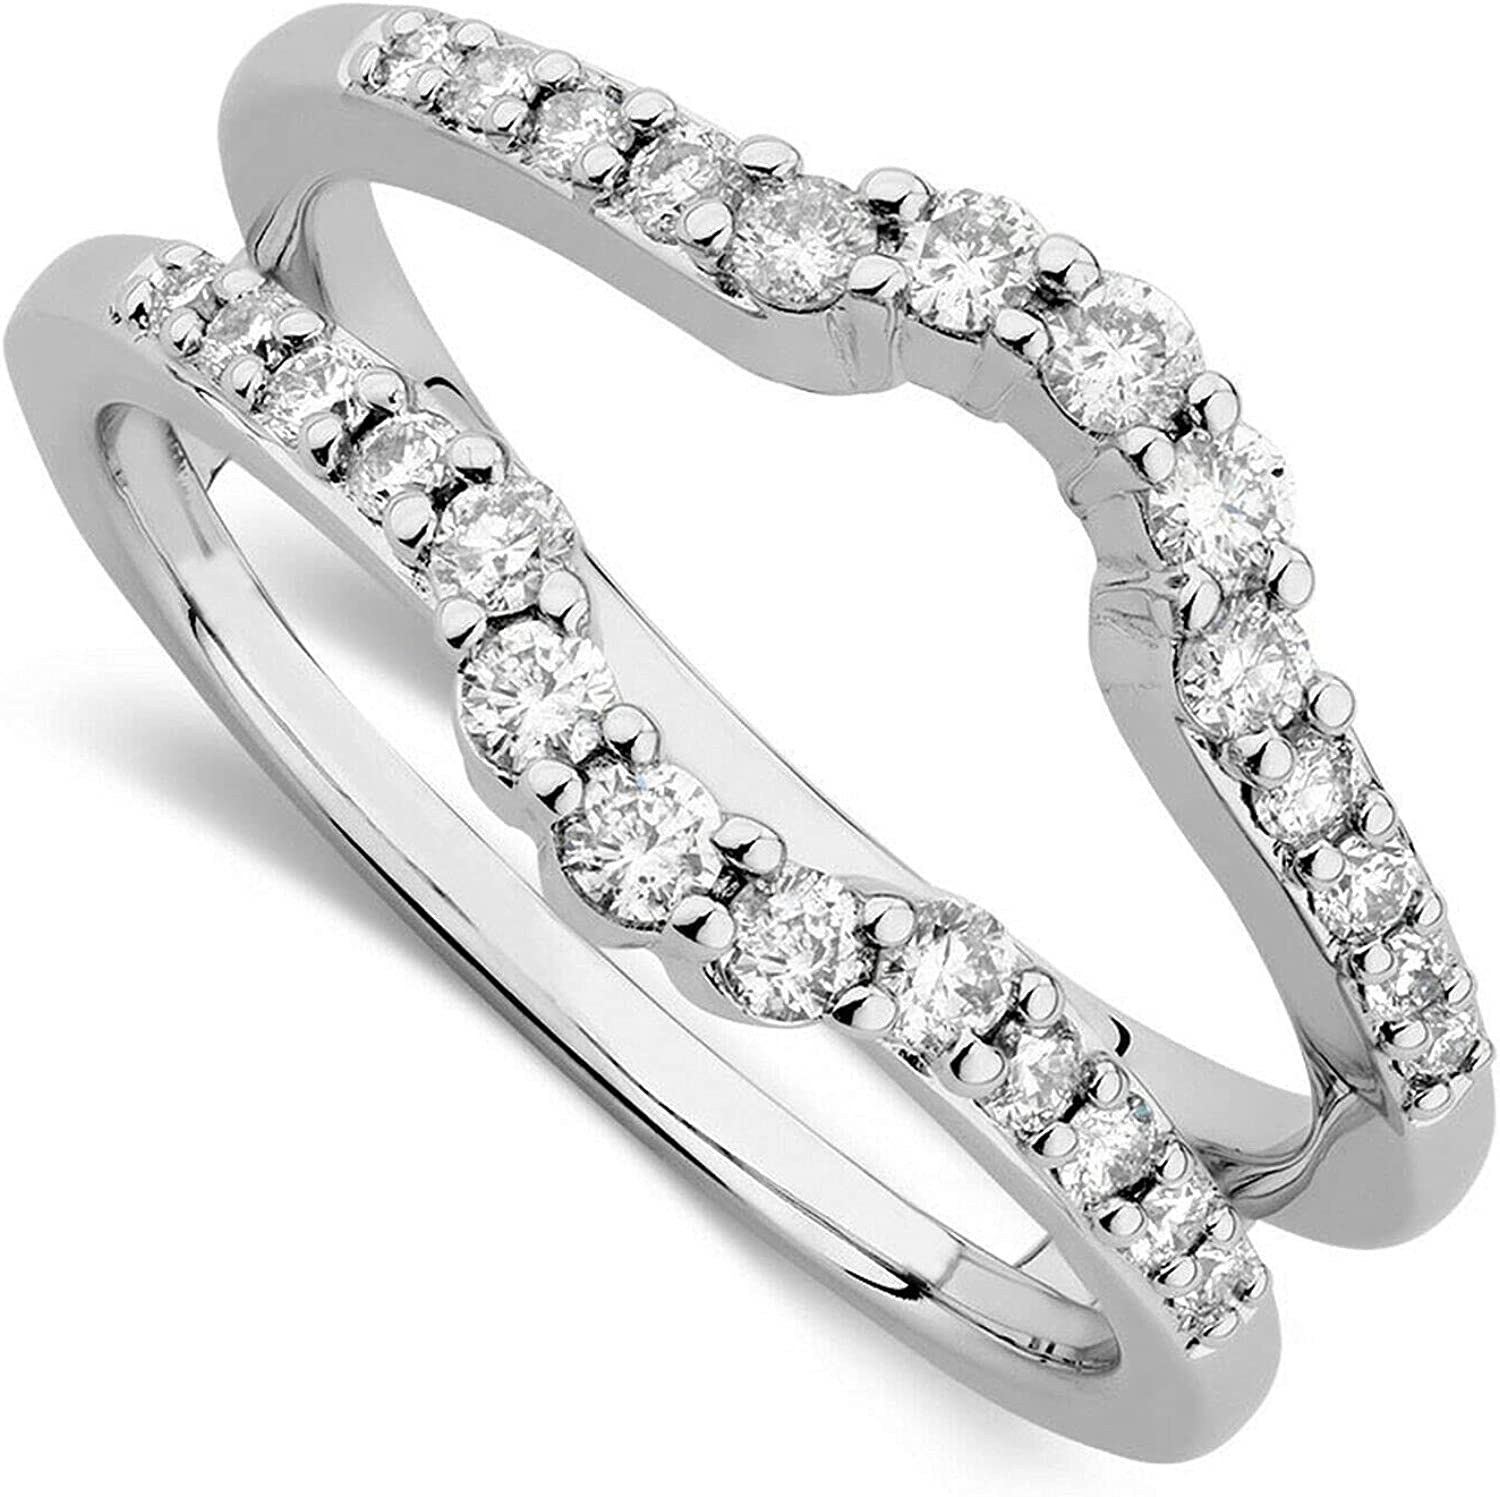 Directly managed store 14K White Gold Finish Sterling Silver Sales of SALE items from new works Solitaire 0.75Ct Enhancer